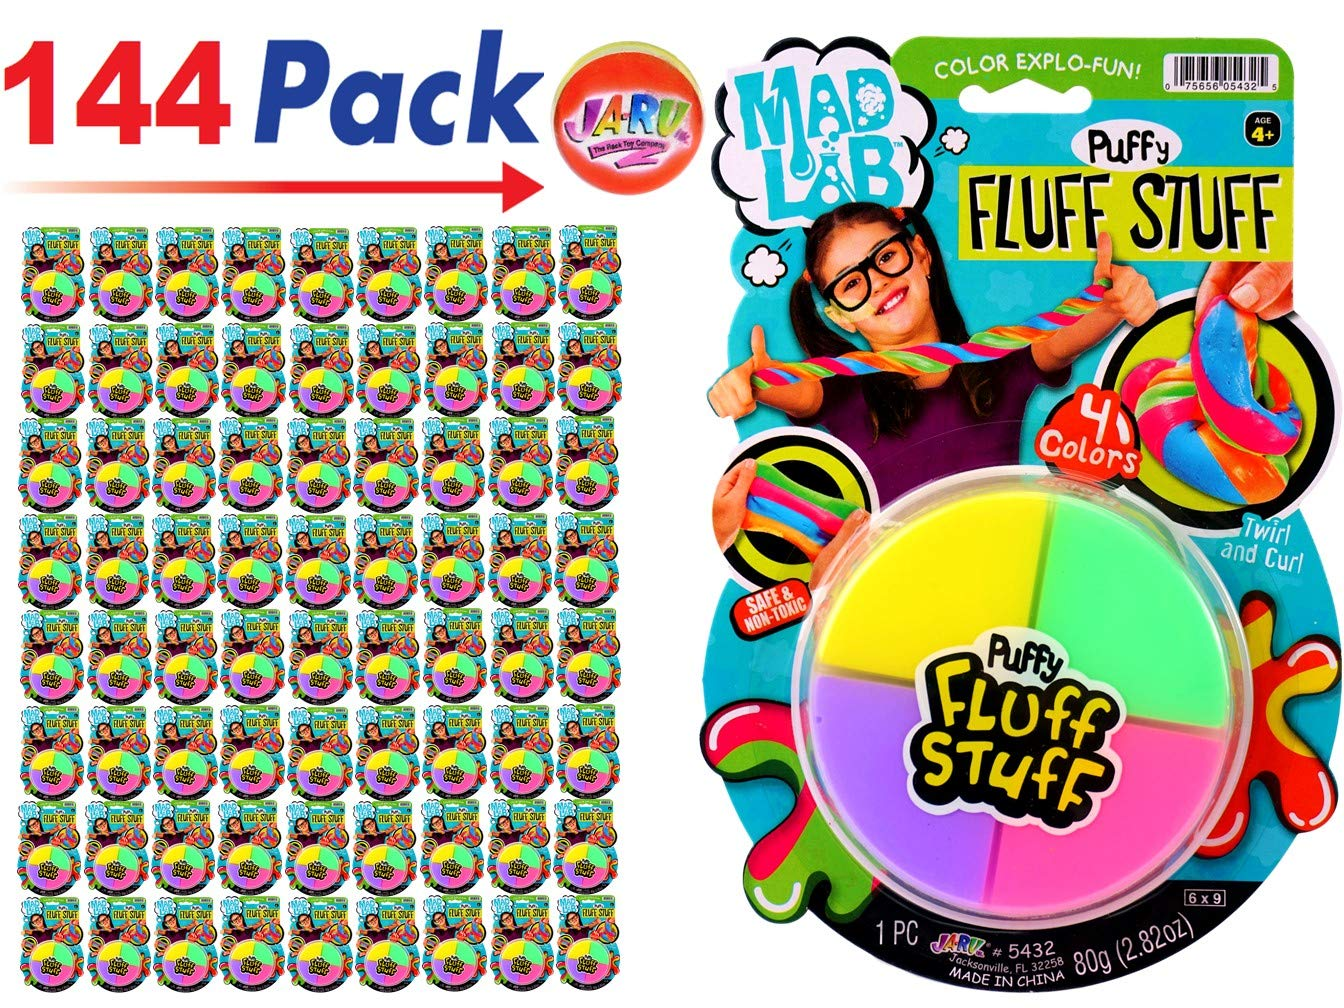 JA-RU Mad Lab Puffy Fluff Stuff Dough (Pack of 144) and one Bouncy Ball Colorful Super Mega Soft Item #5432-144p